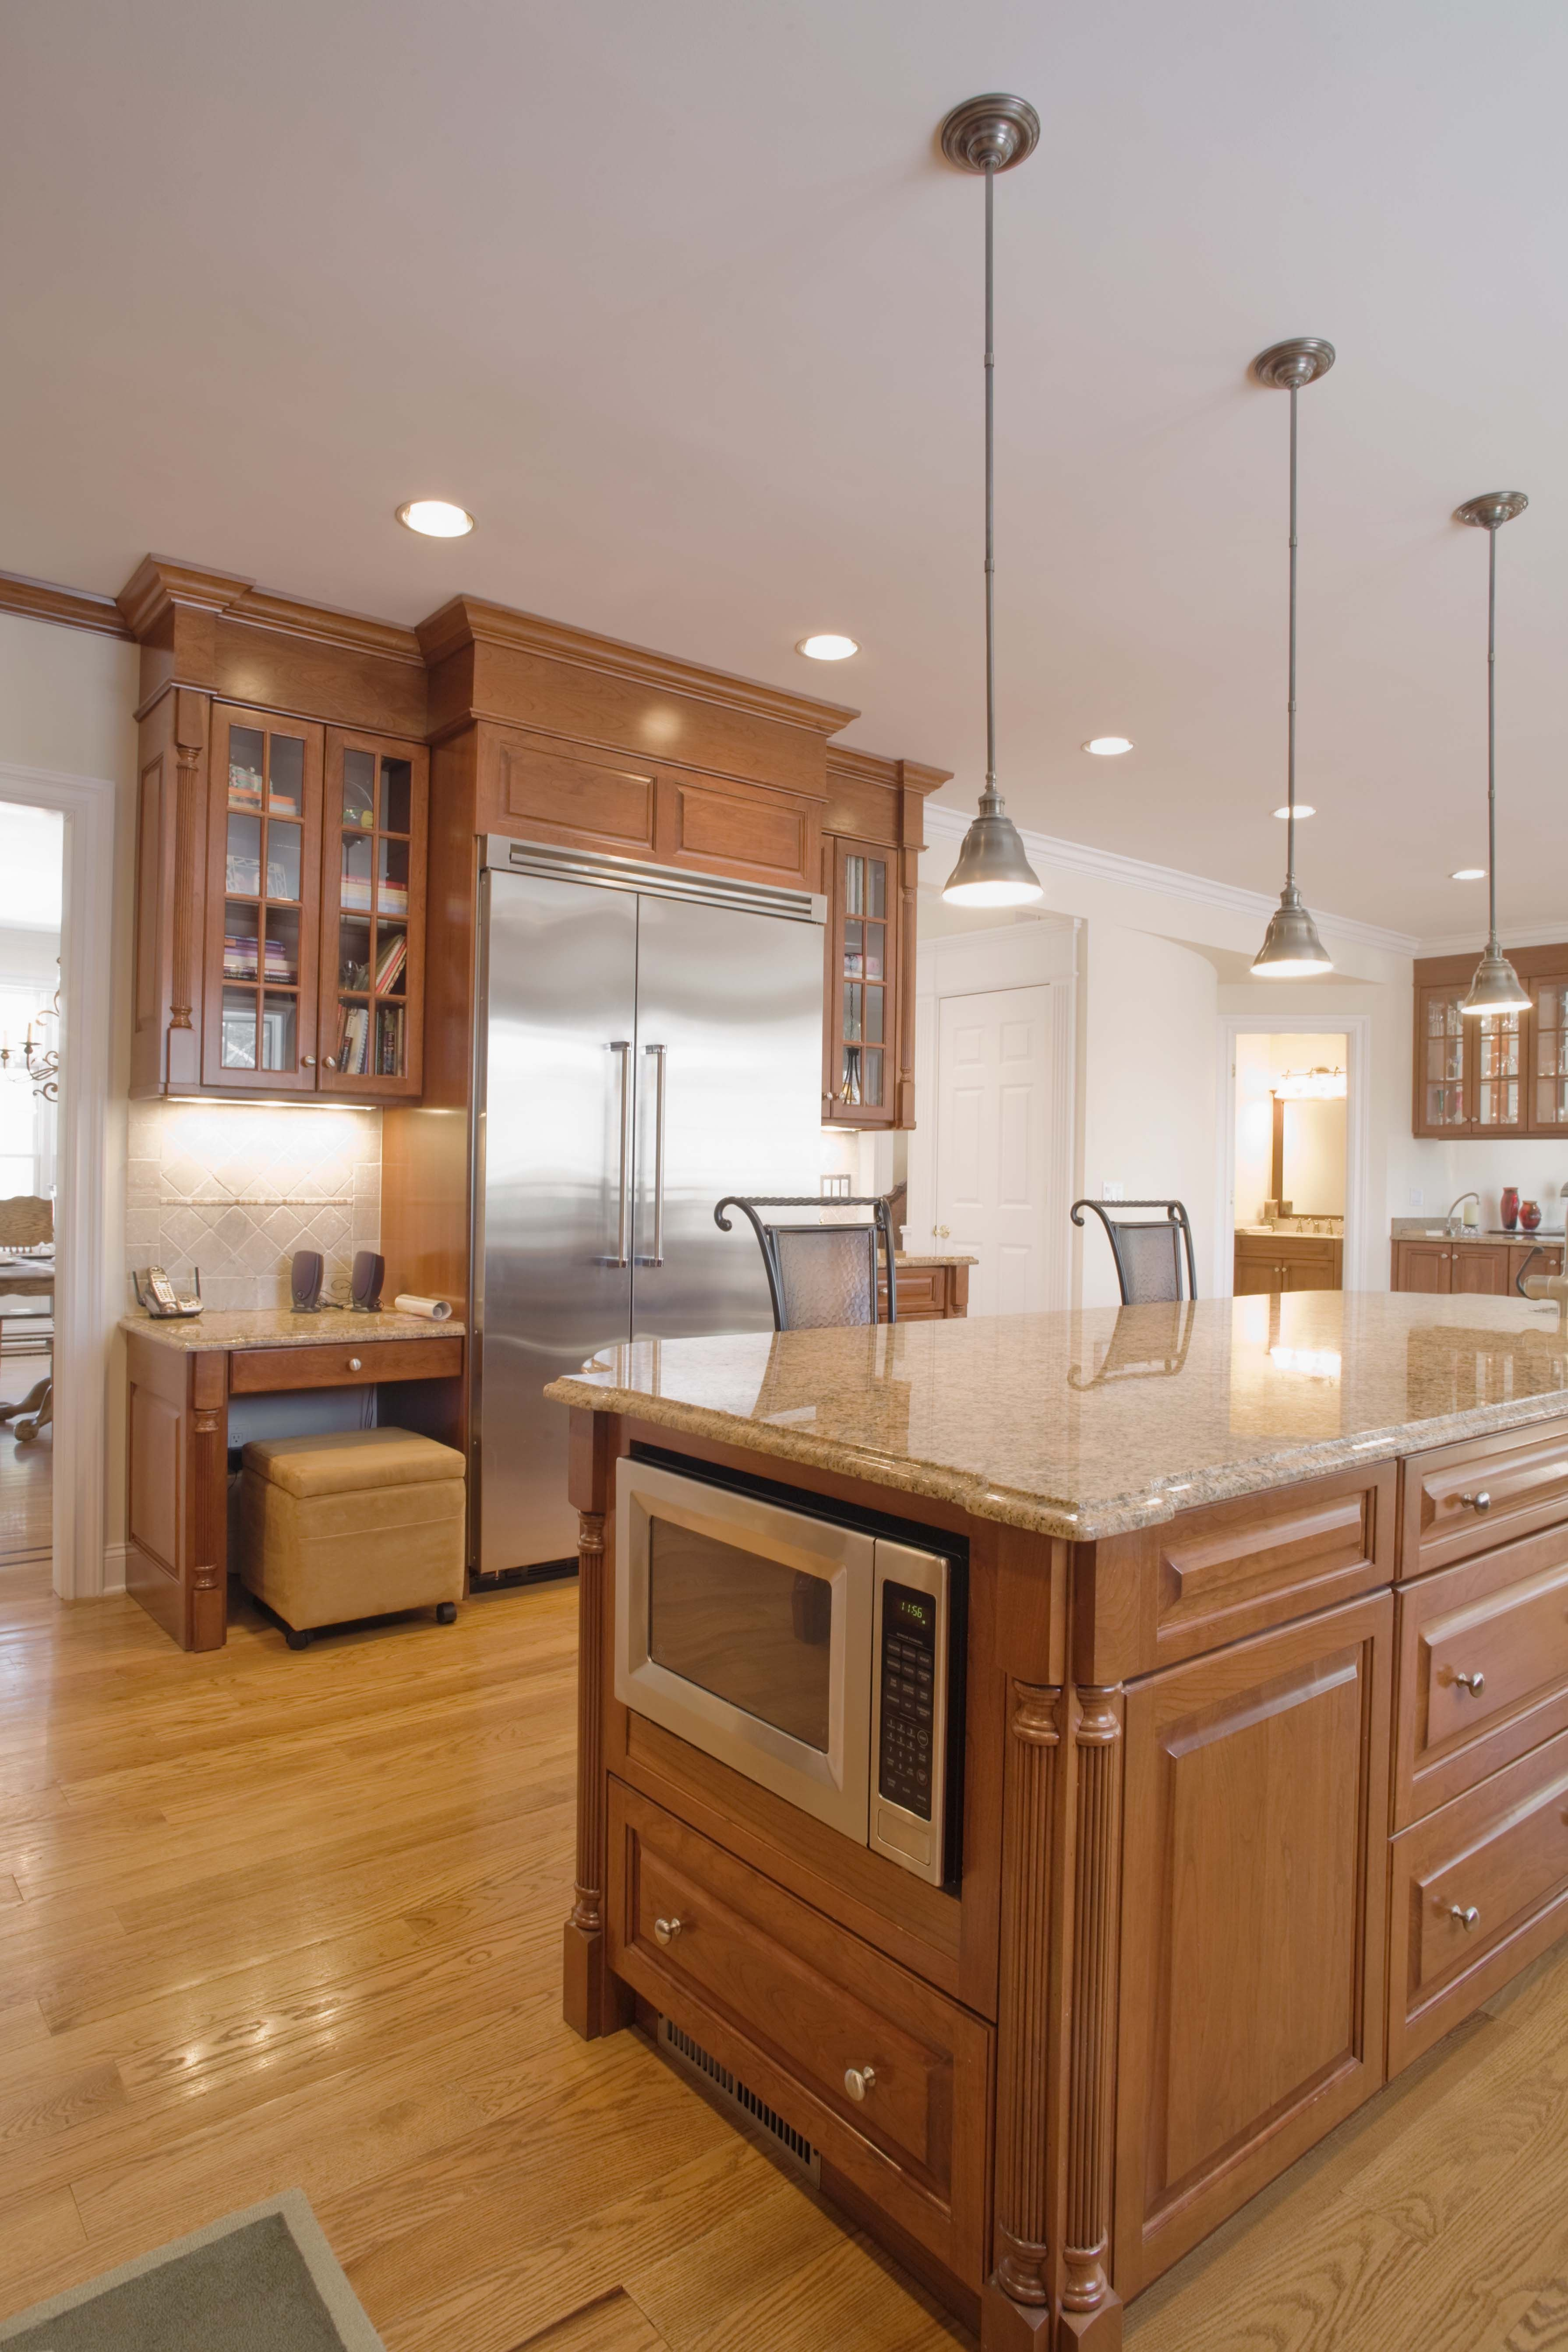 Accessible Home For Our Special Needs Family Easystand Blog Cost Of Kitchen Cabinets Refacing Kitchen Cabinets Cost Kitchen Soffit